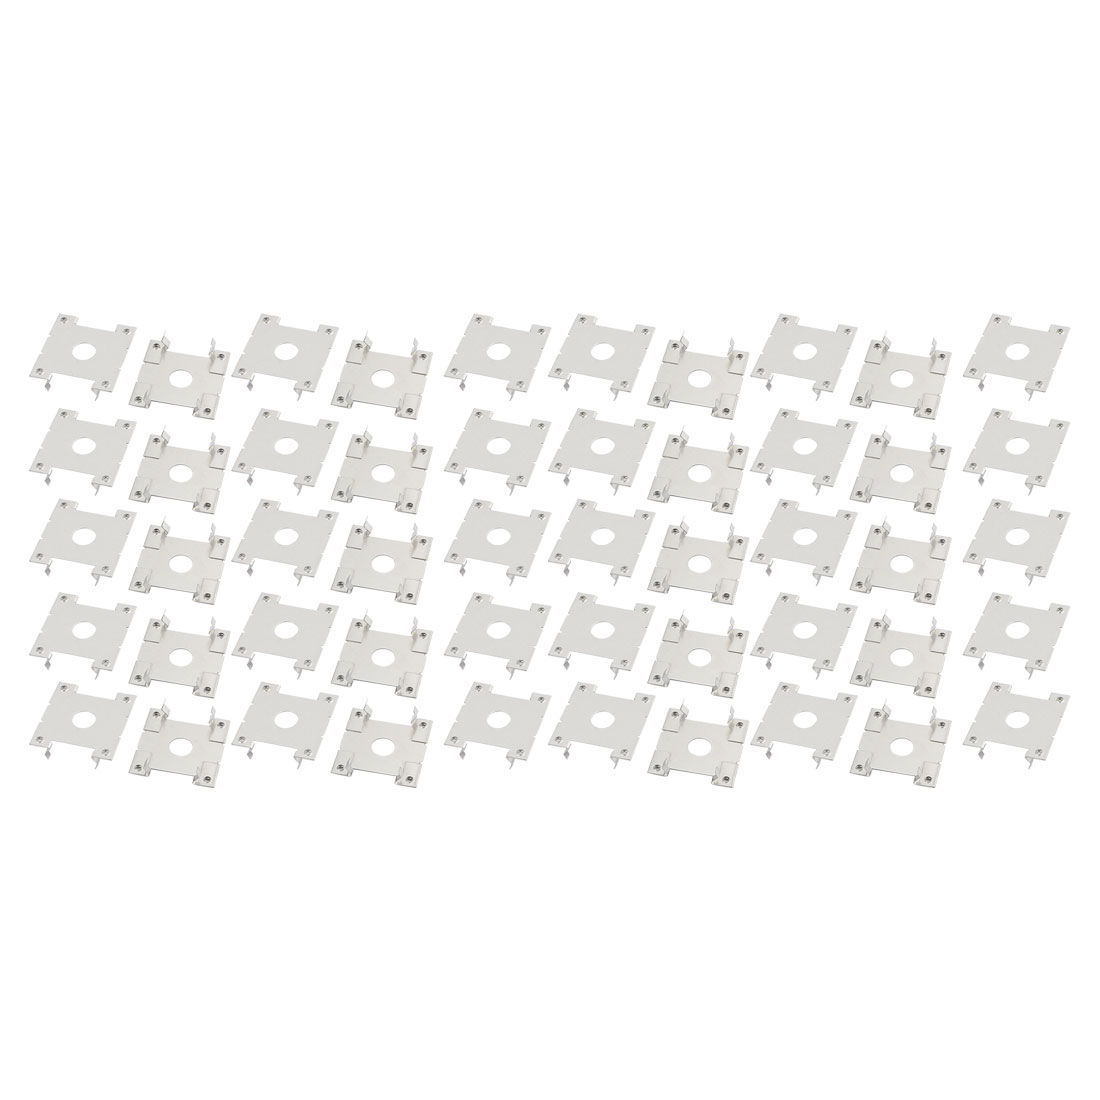 50pcs 32x30x8mm Stainless Steel Solar Conducting Strip Roof Mounting Bracket